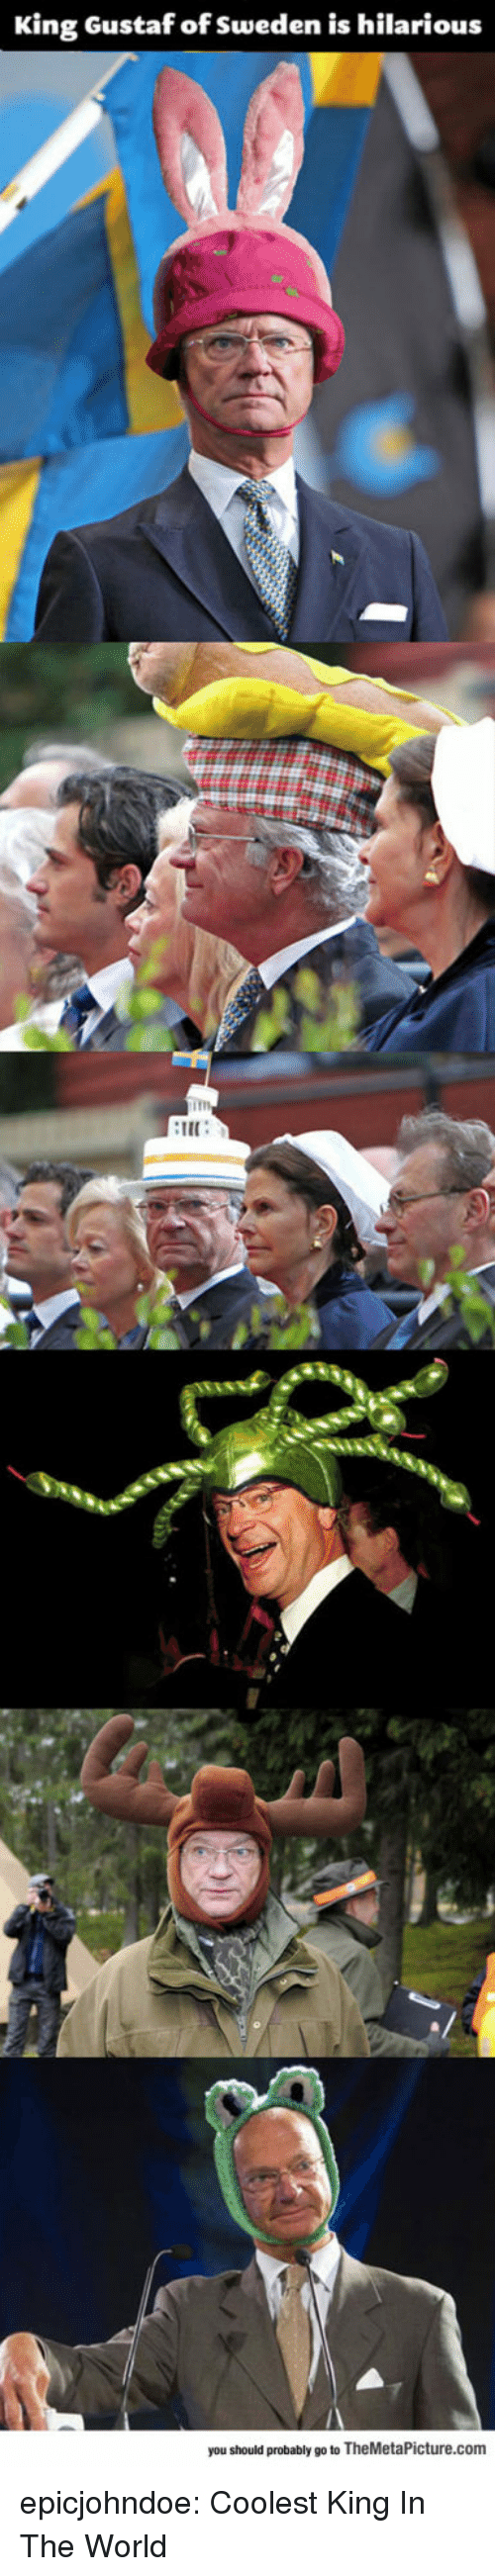 Tumblr, Blog, and Sweden: King Gustaf of Sweden is hilarious  im  IE  you should probably go to TheMetaPicture.com epicjohndoe:  Coolest King In The World